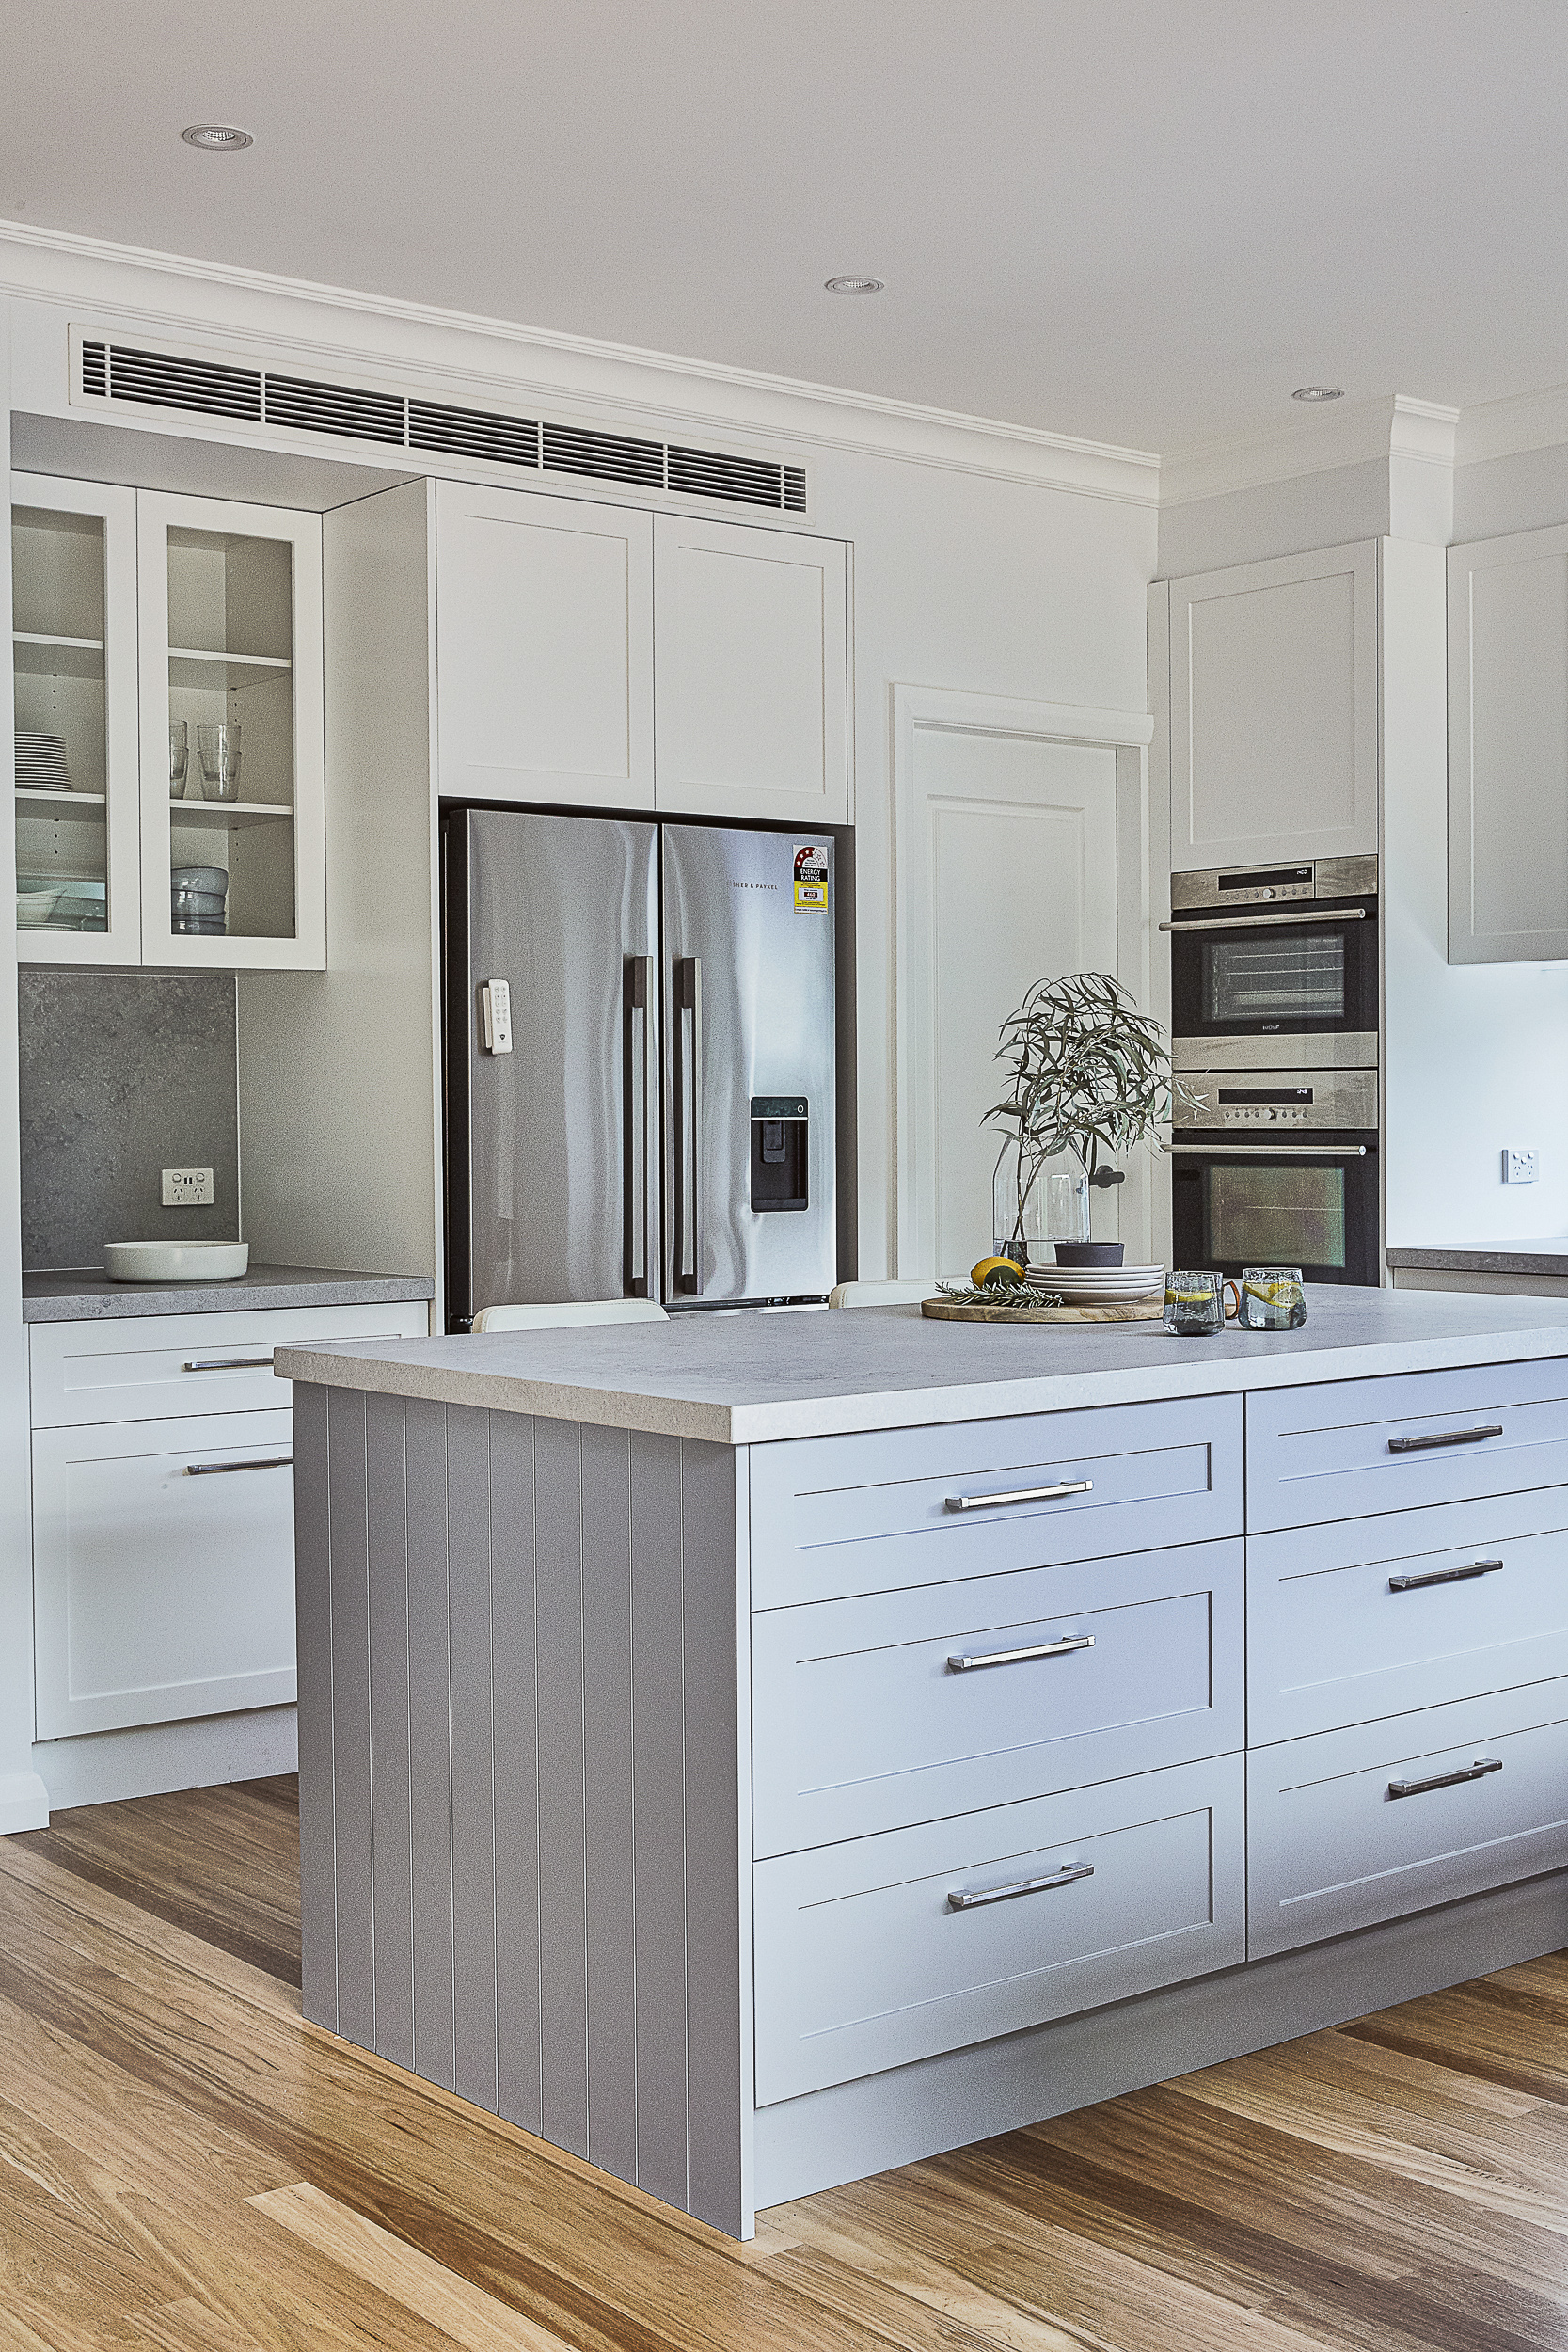 Hampton's Style kitchen design